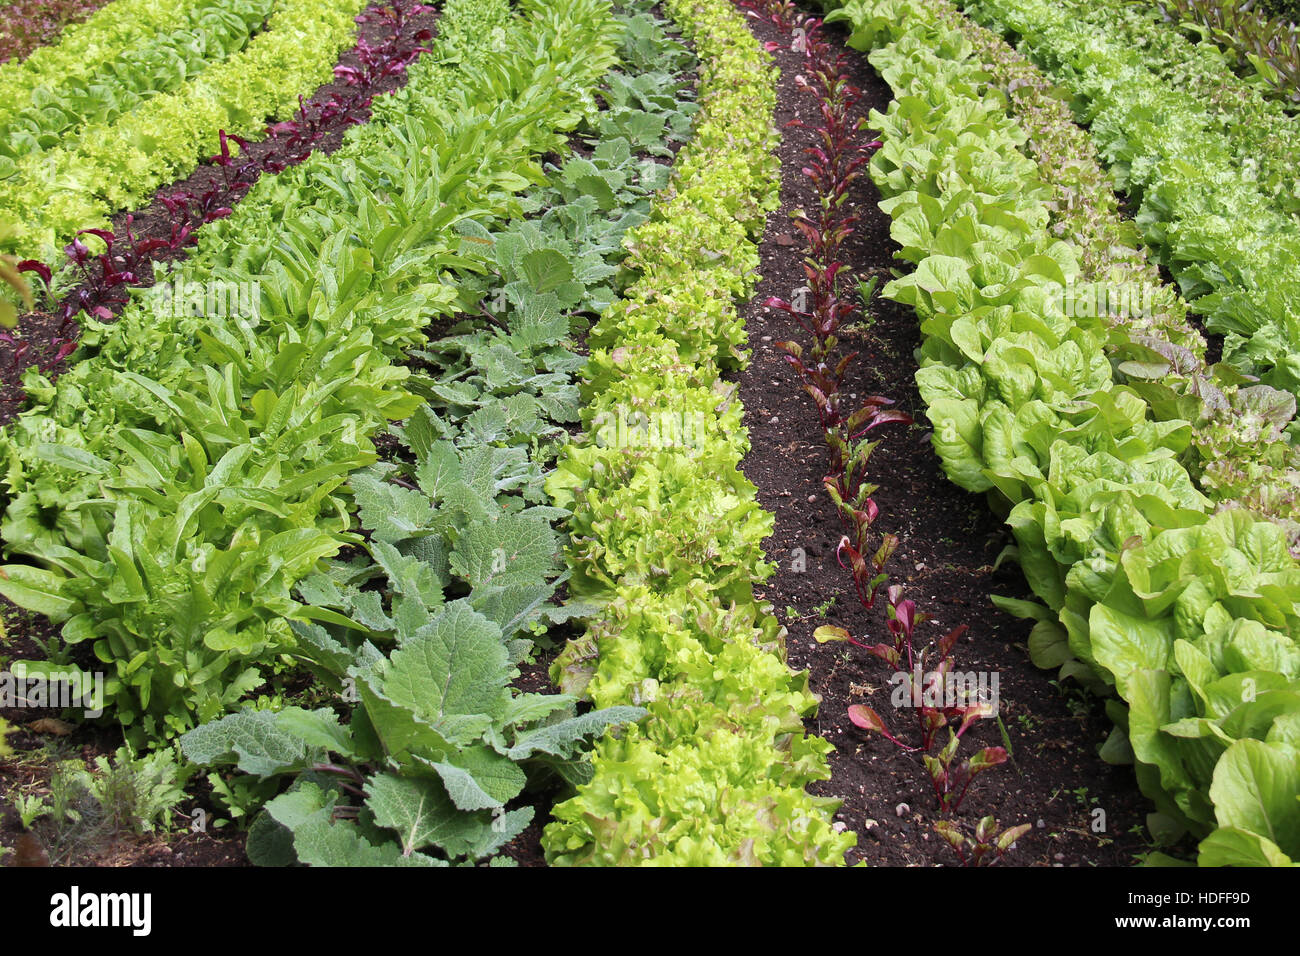 Neat and perfectly aligned green and fresh kitchen garden - Stock Image